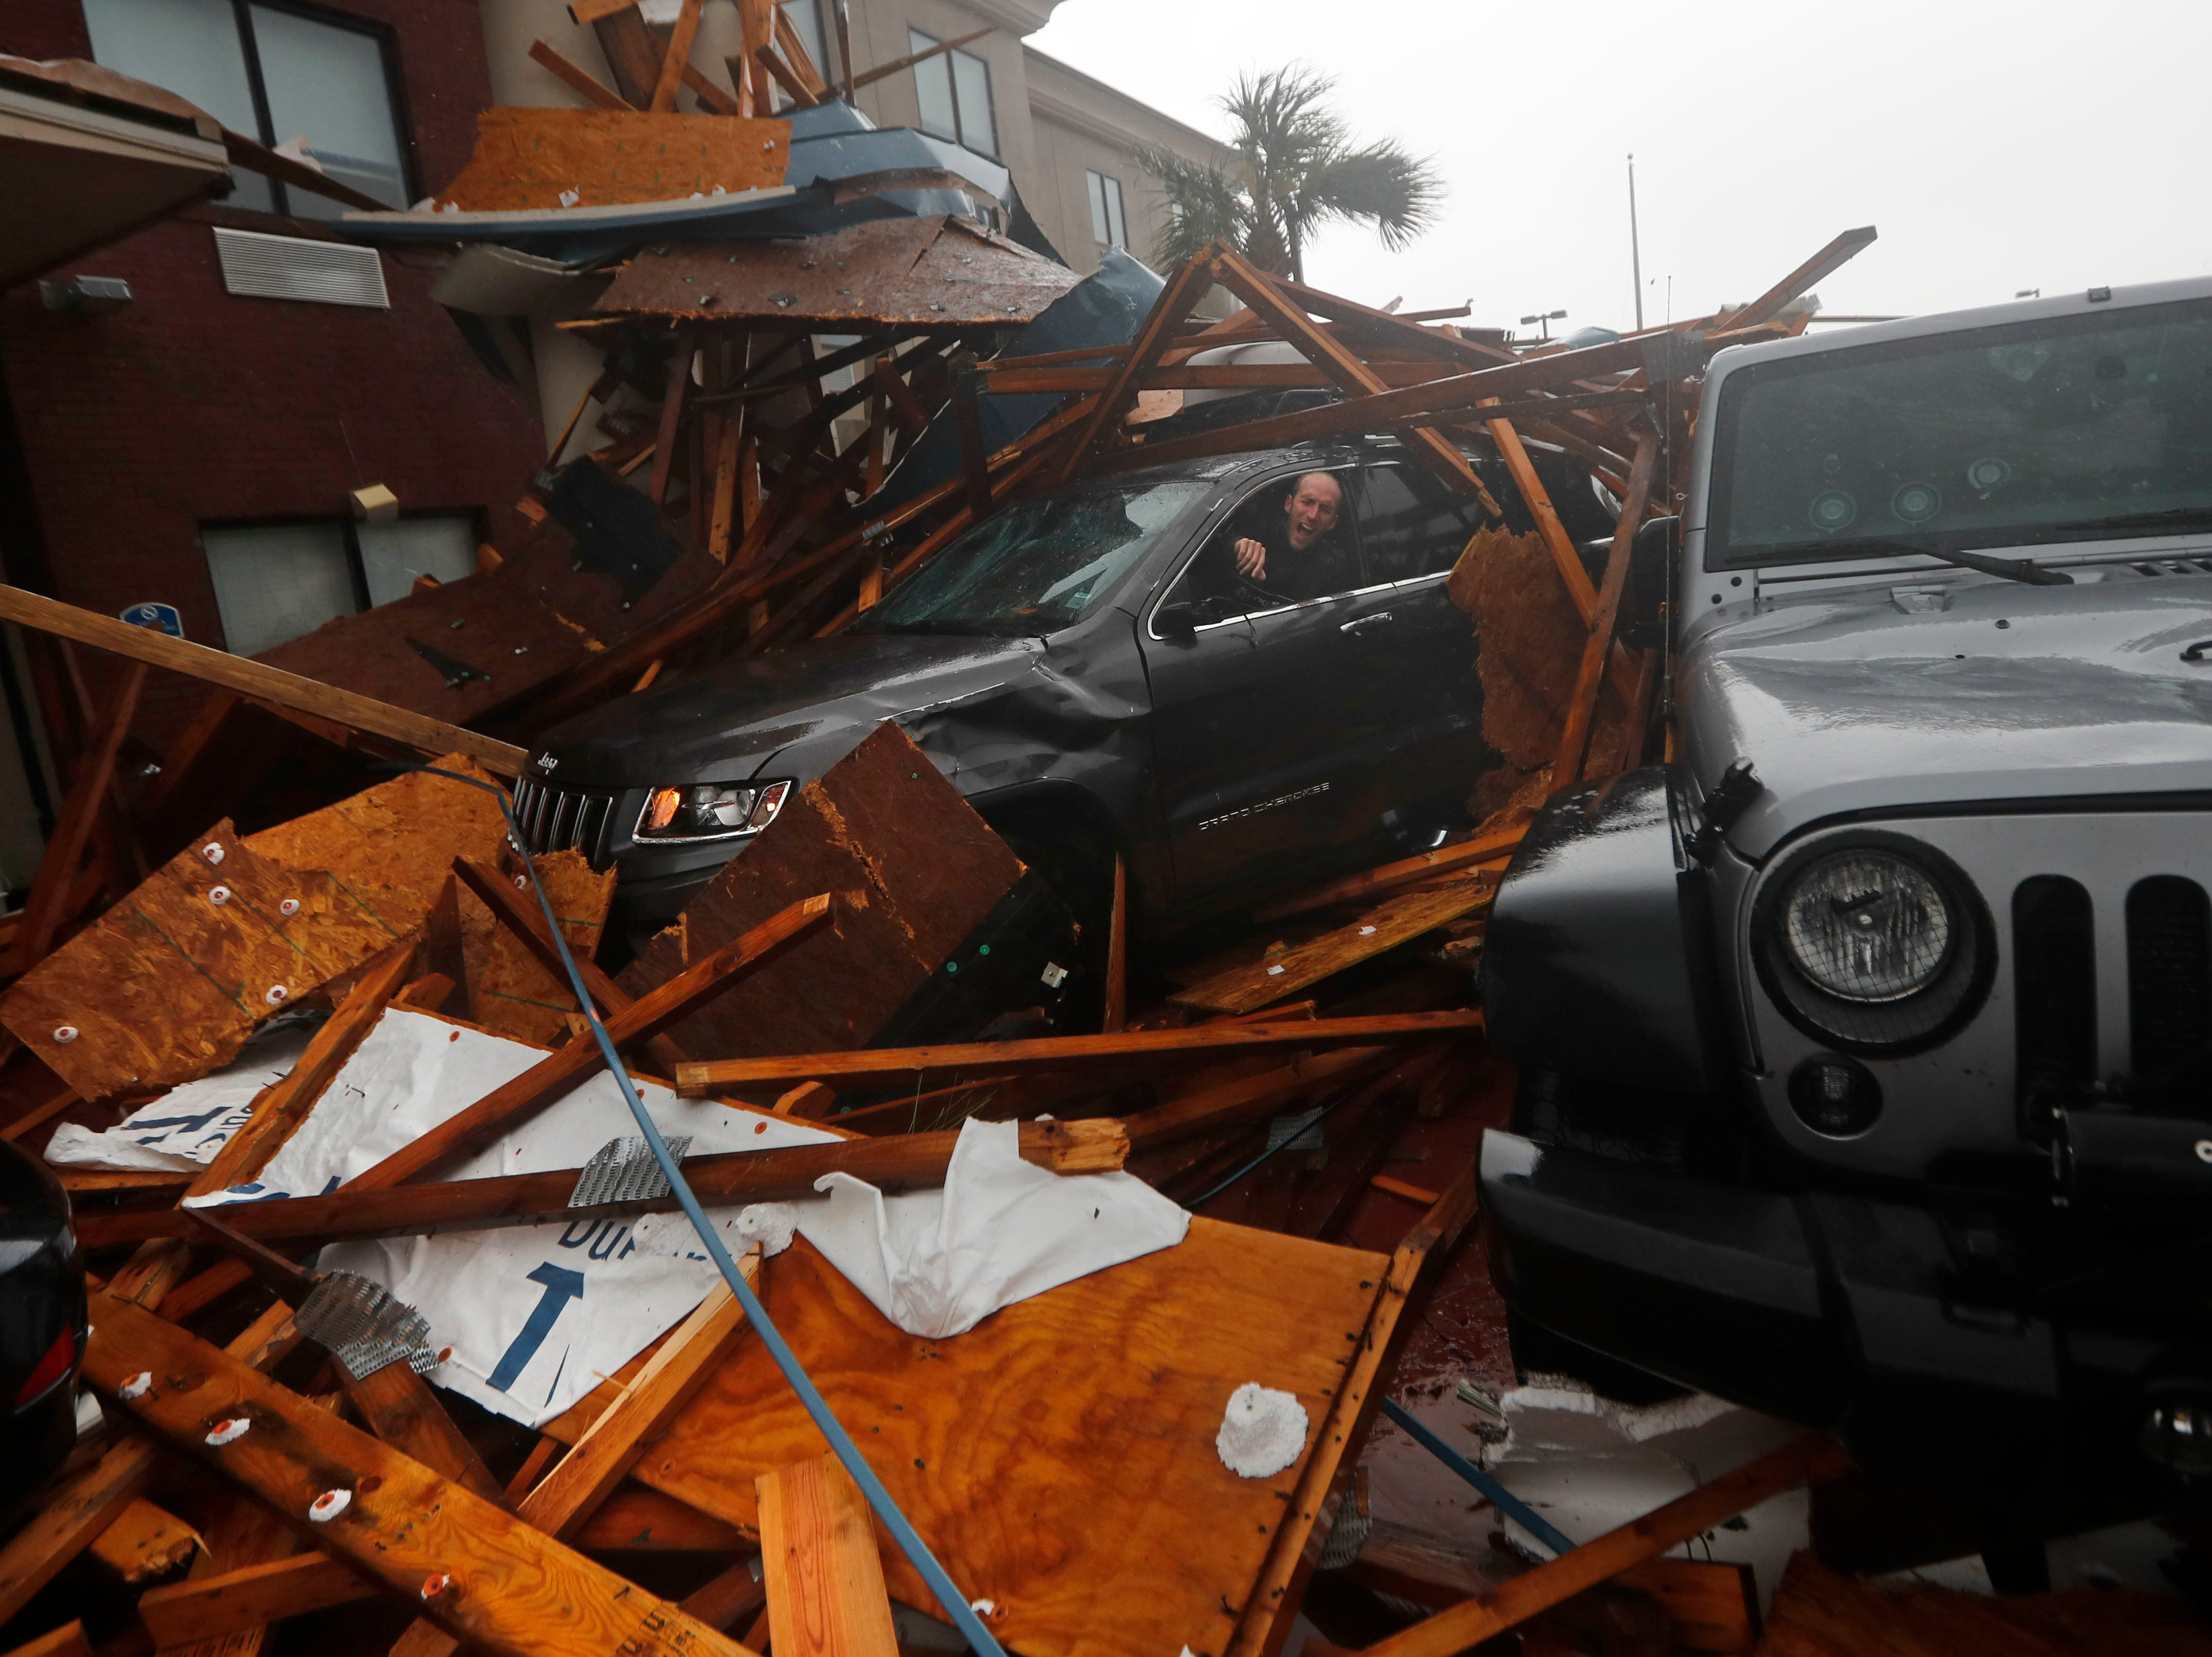 A storm chaser climbs into his vehicle during the eye of Hurricane Michael to retrieve equipment after a hotel canopy collapsed in Panama City Beach, Fla., Wednesday, Oct. 10, 2018.